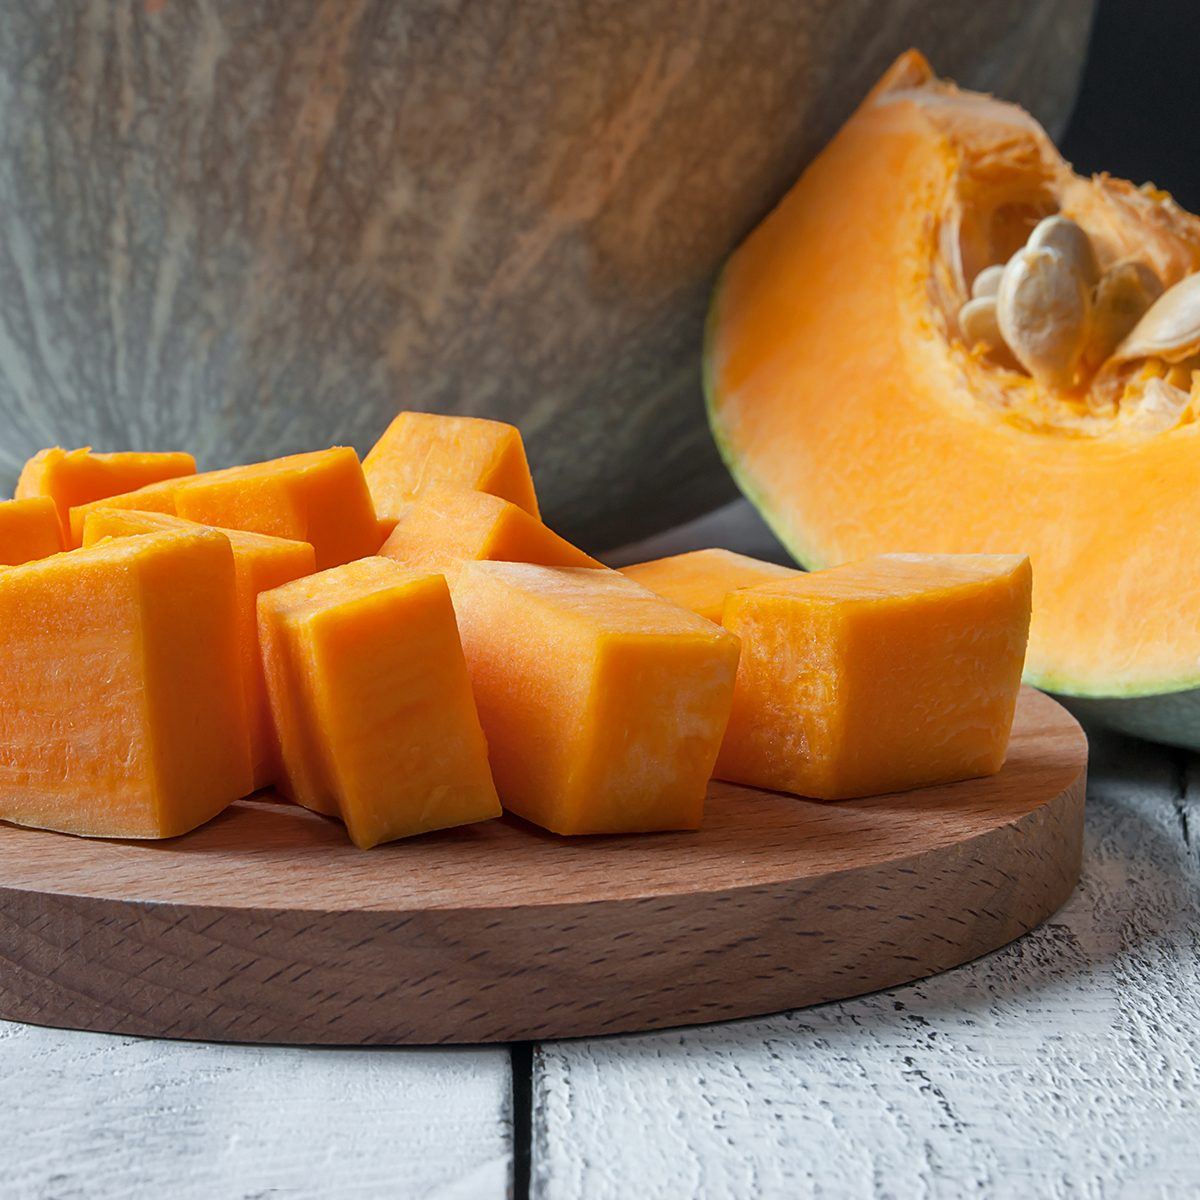 Sliced and chopped pumpkin pieces. Pumpkin with seeds.